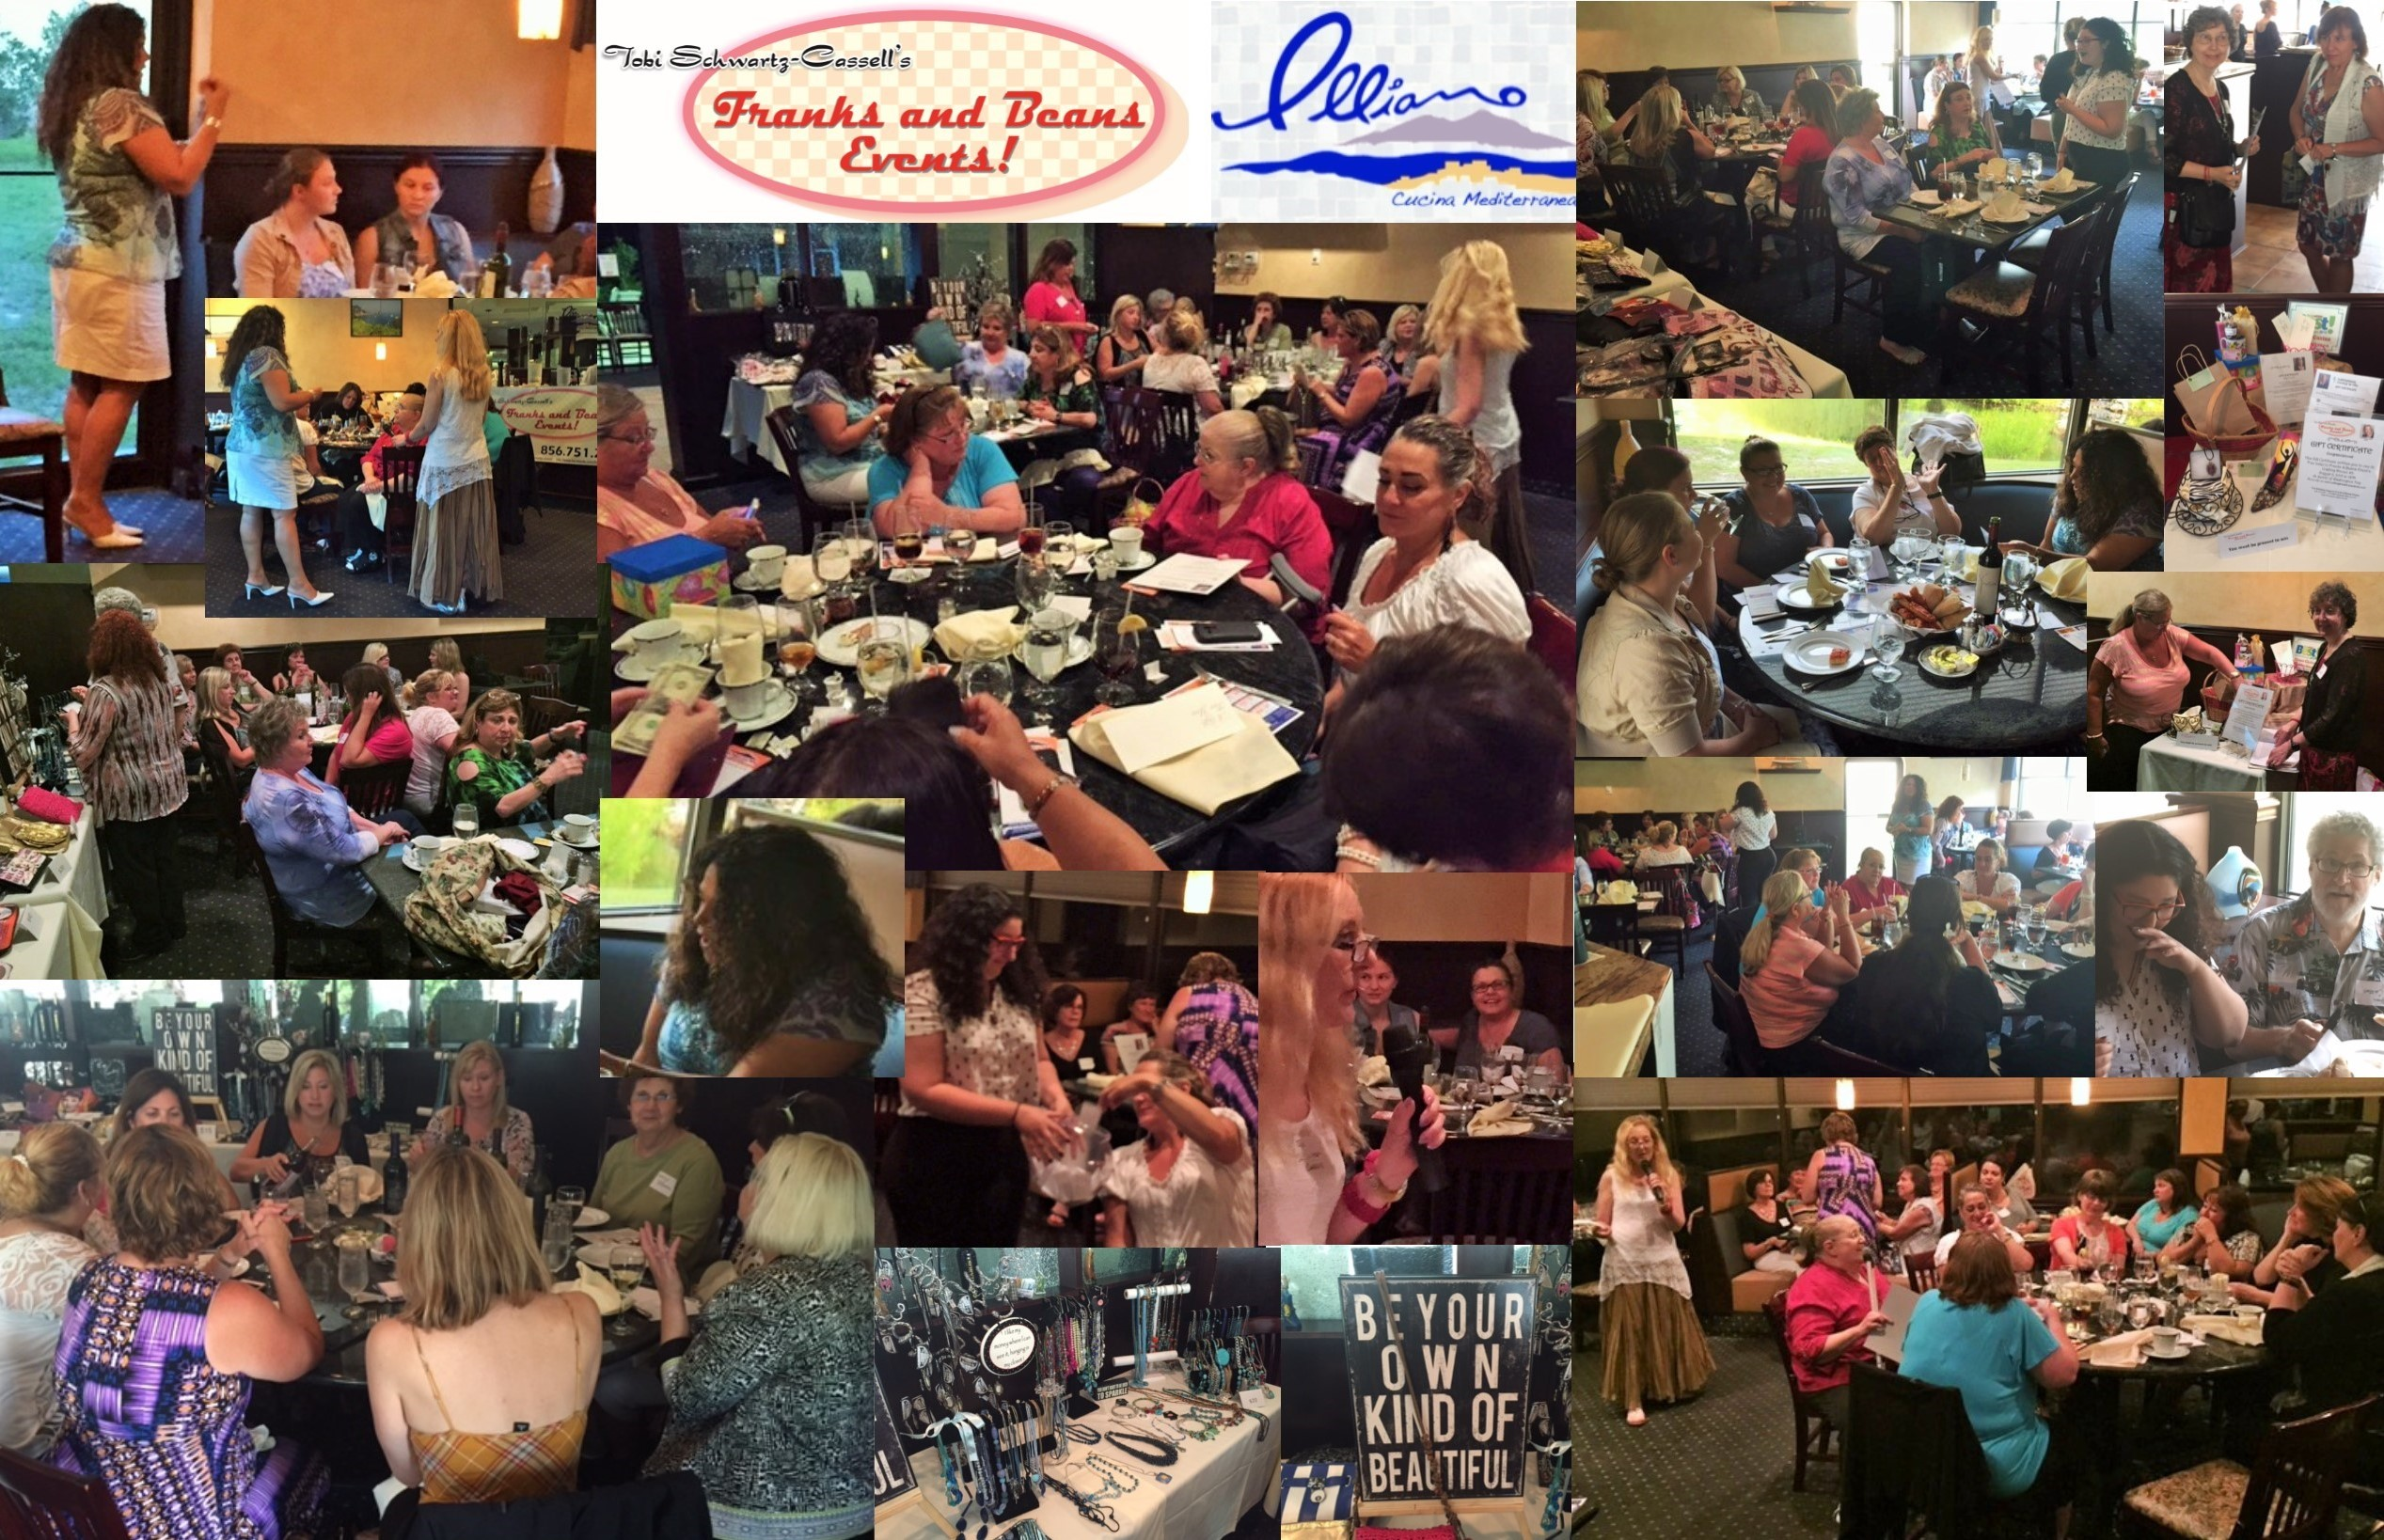 Rhonda was accurate, compassionate and funny. Illiano's food and service were perfect. And everyone had a blast with the door prizes!